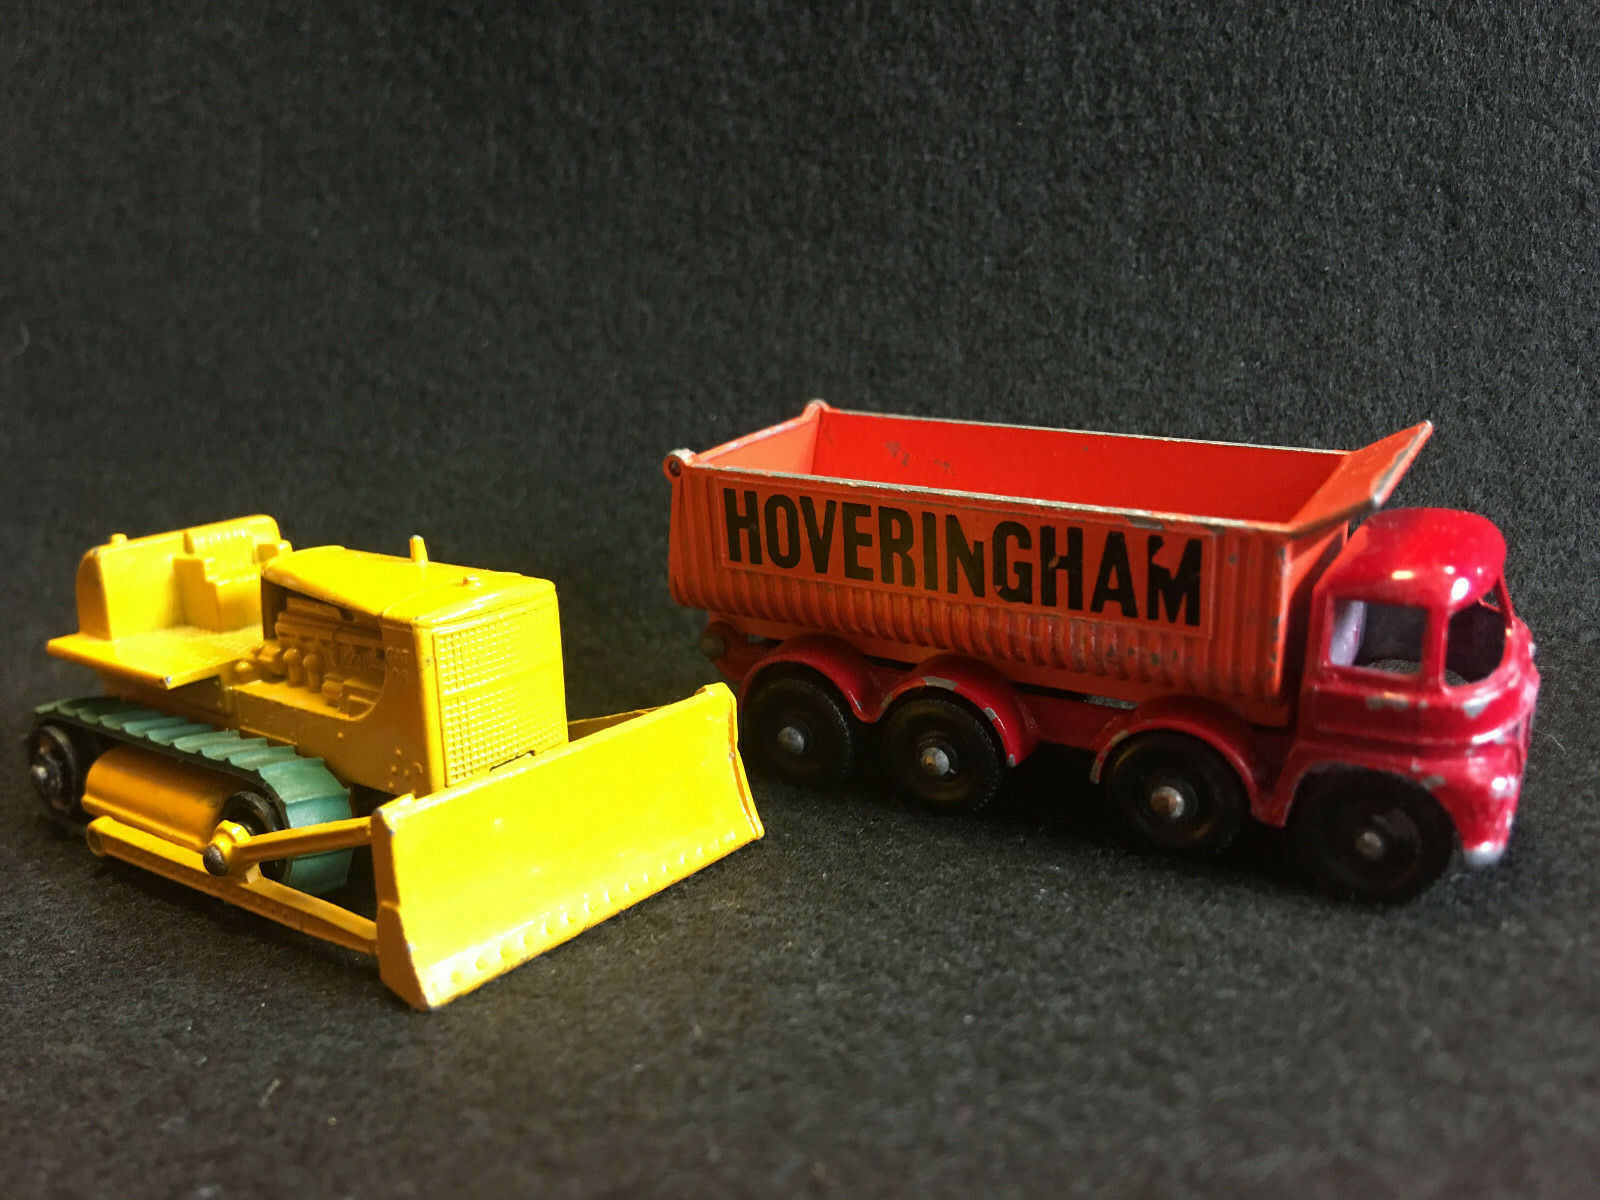 Vtg Lesney Hoveringham Tipper & Matchbox Caterpillar Bulldozer